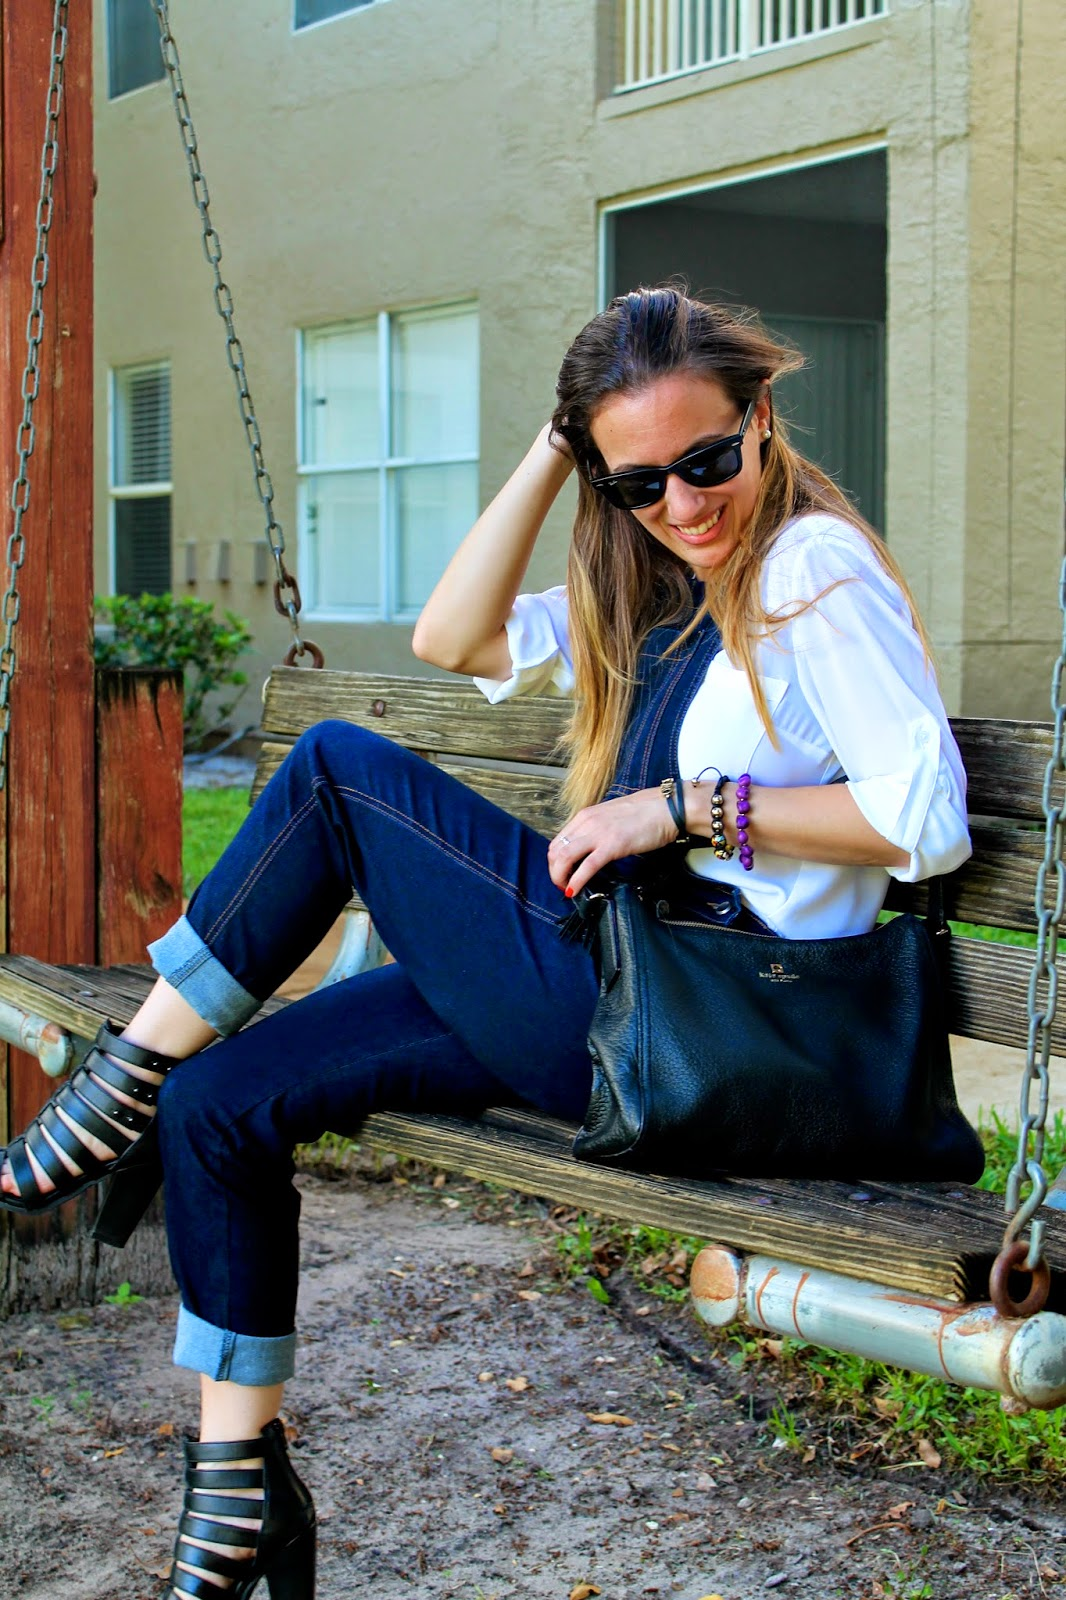 AGAPE Boutiq, Kate Spade, BCBGeneration, Ray-Ban, Steve Madden, Miami, fashion blog, street style, overalls, gladiator sandals, prep, classic, trends, look book